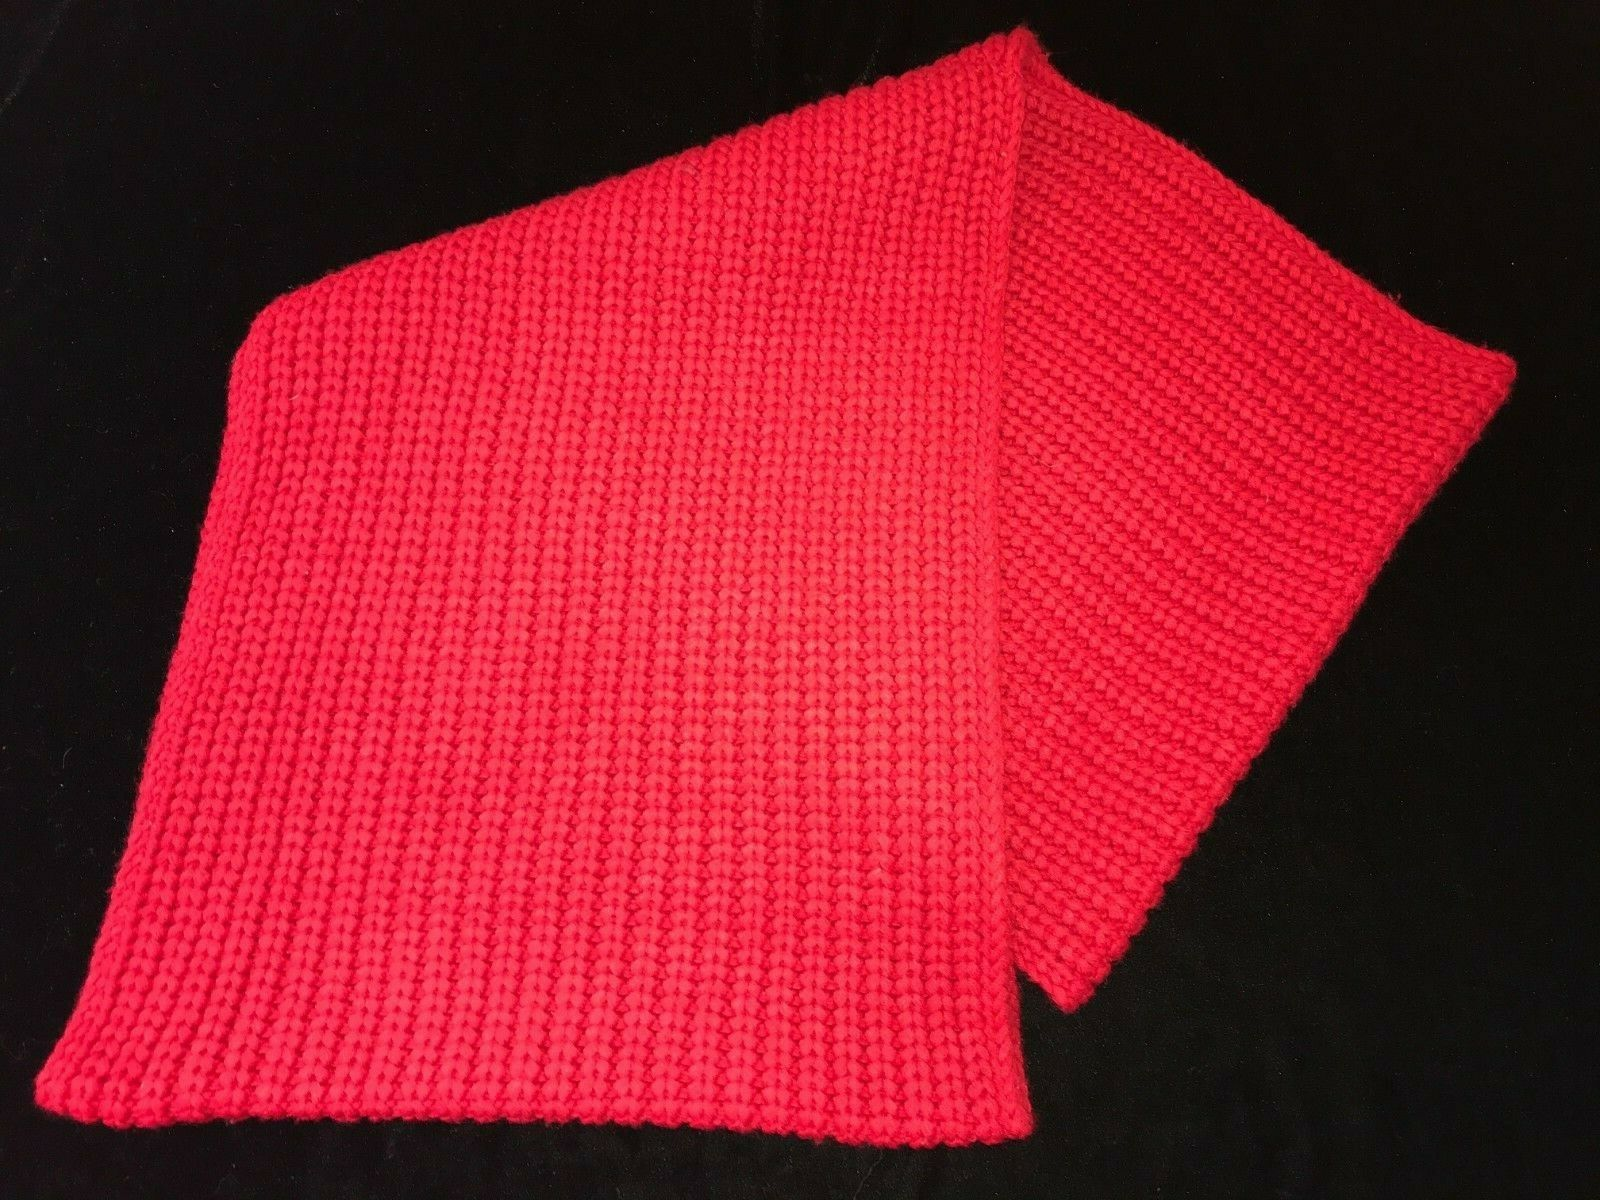 J CREW solid red BULKY KNIT womens one size INFINITY SCARF so soft @@